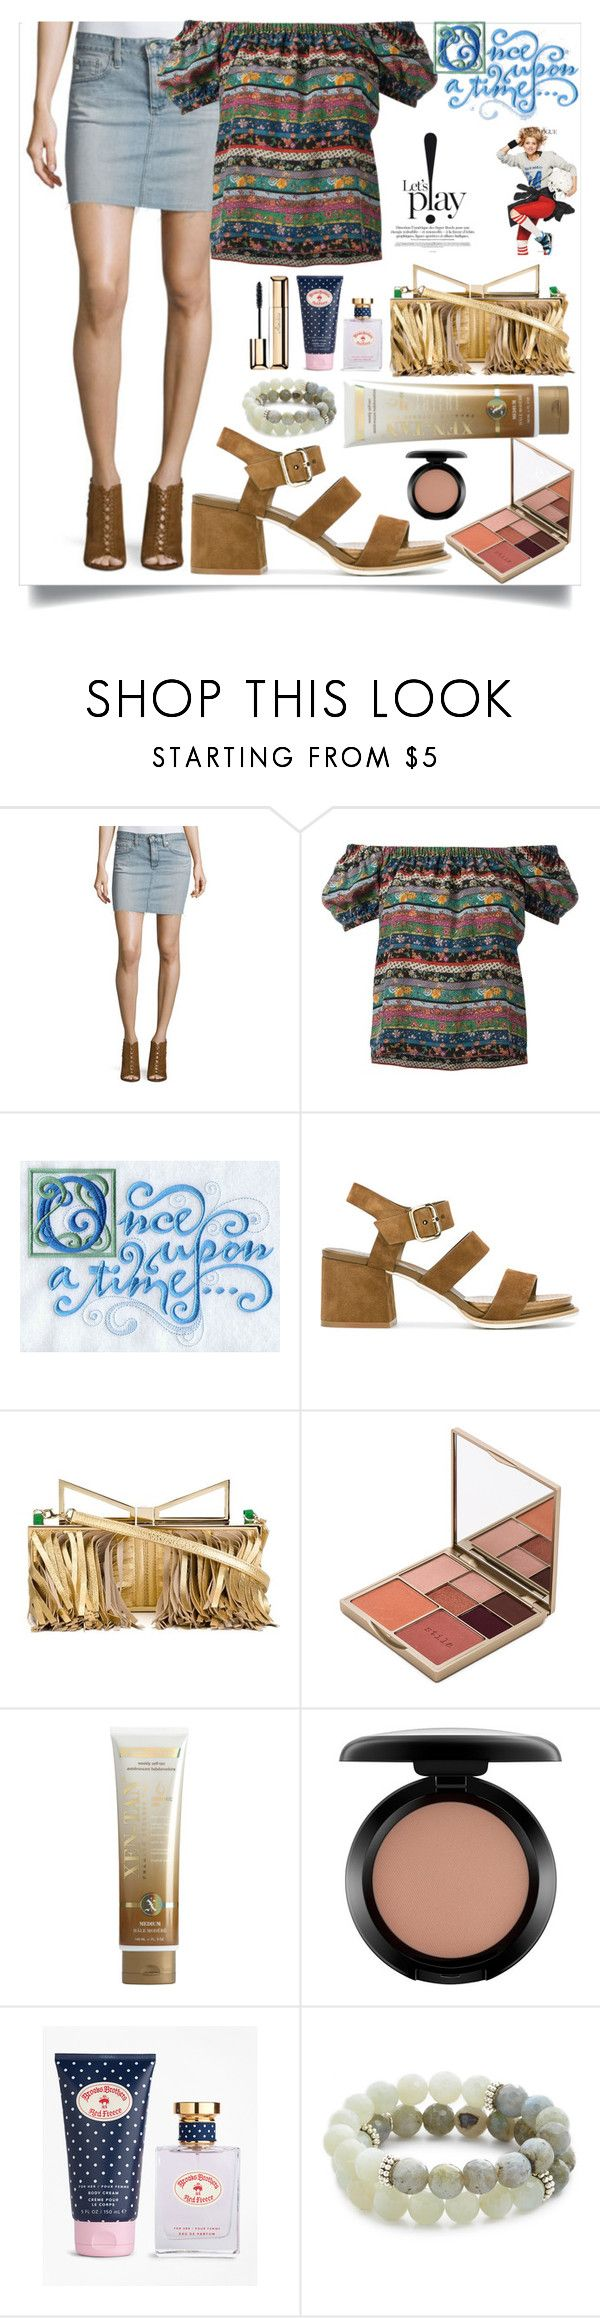 """""""Denim Skirt"""" by camry-brynn ❤ liked on Polyvore featuring AG Adriano Goldschmied, Philosophy di Lorenzo Serafini, Once Upon a Time, Tod's, Sara Battaglia, Stila, Xen-Tan, MAC Cosmetics, Brooks Brothers and Lacey Ryan"""